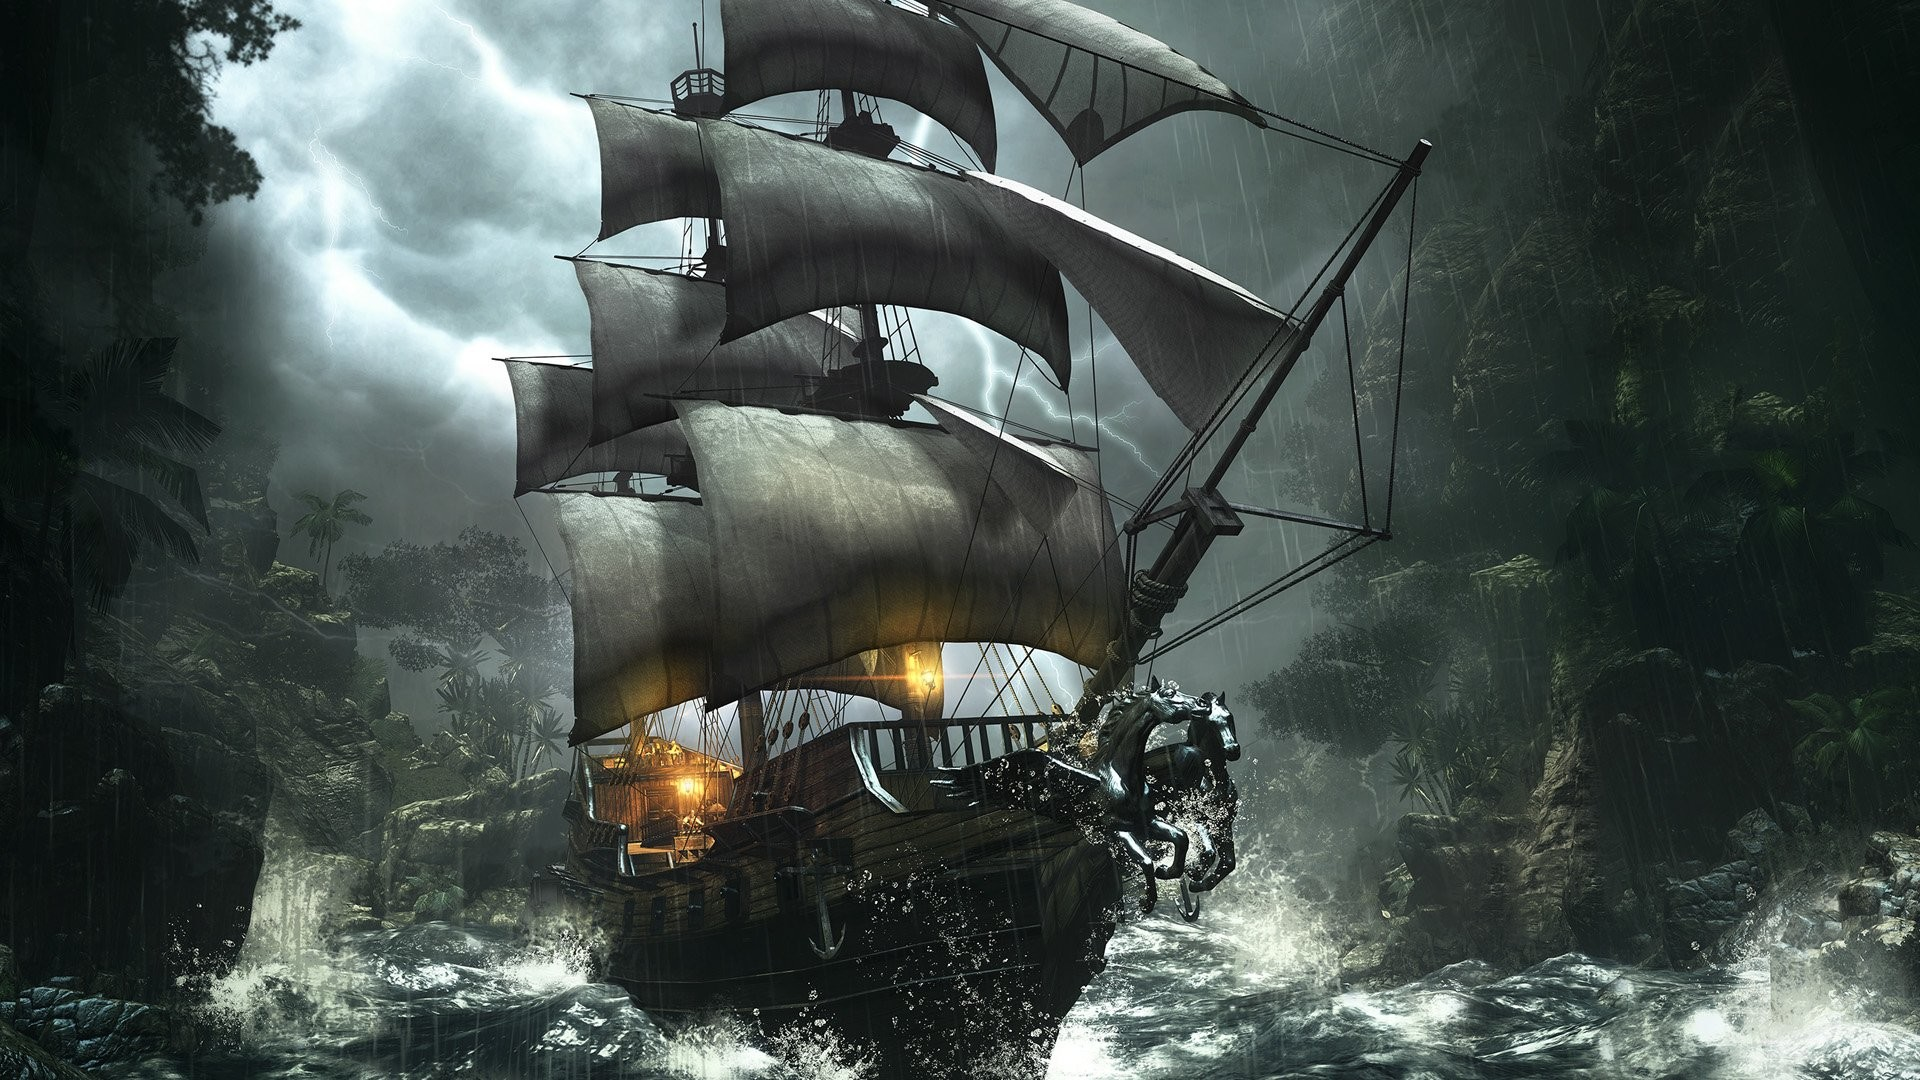 Hd Pirate Ship Wallpaper: Pirate Ship Wallpaper HD (71+ Images